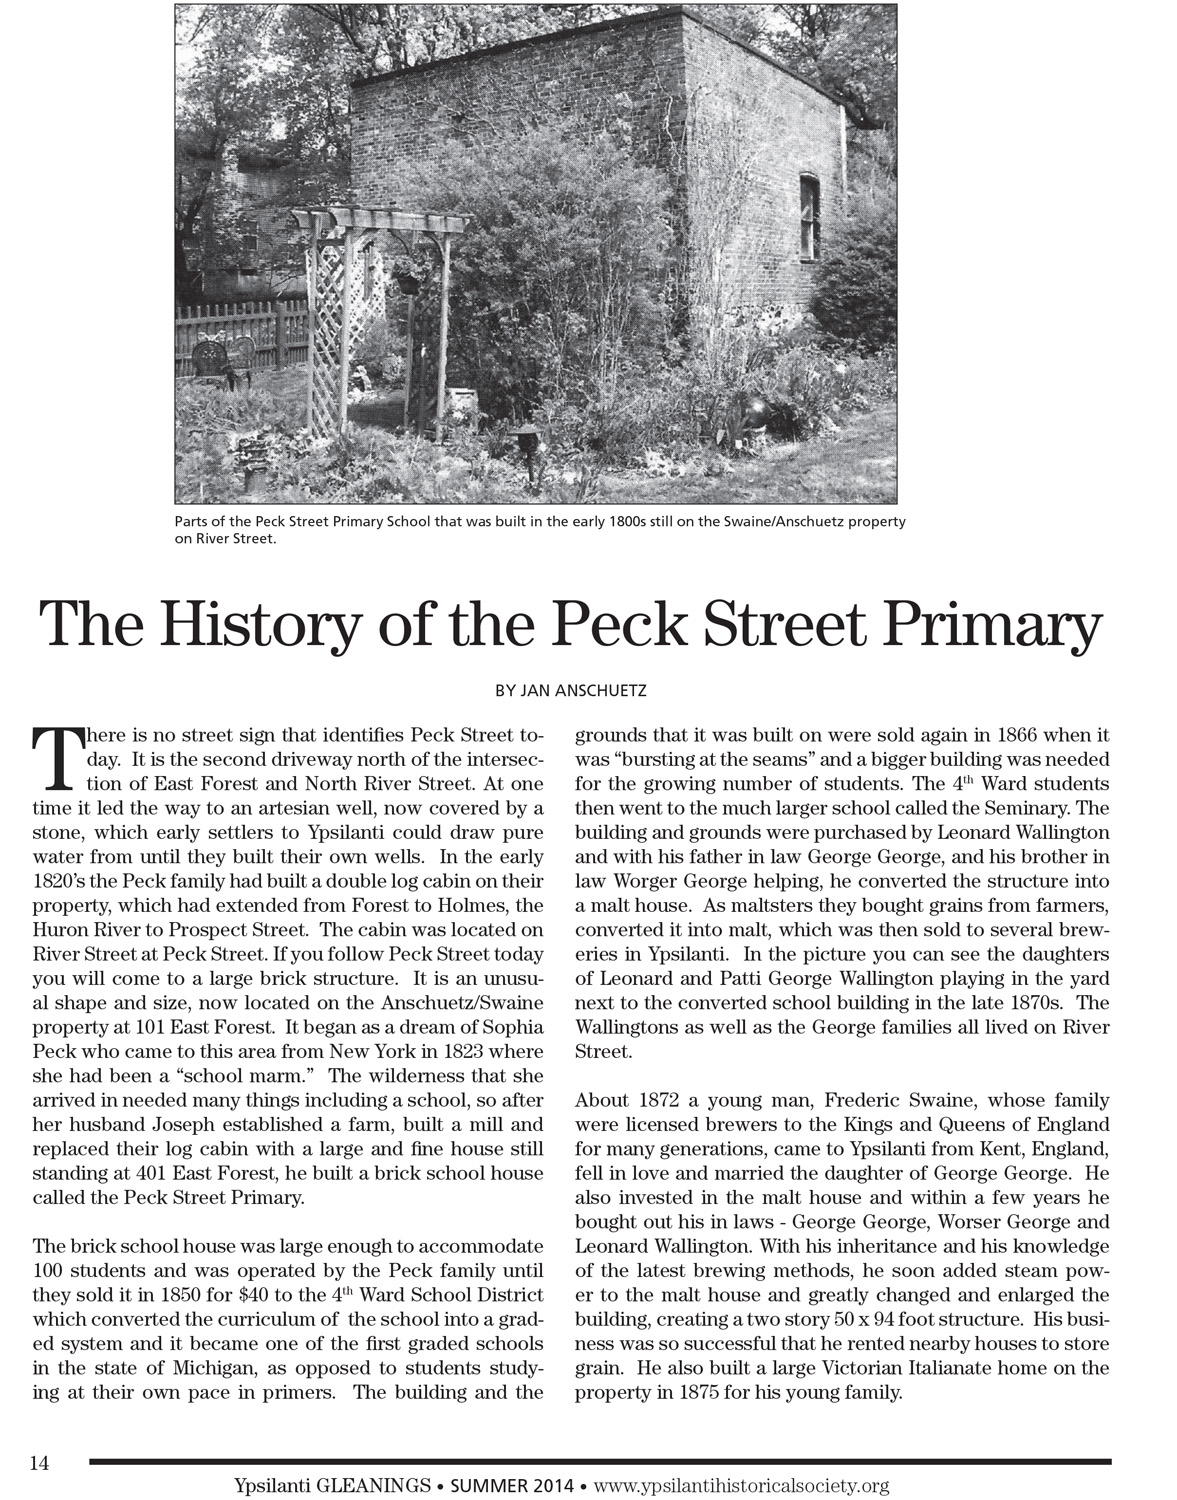 The History of the Peck Street Primary image